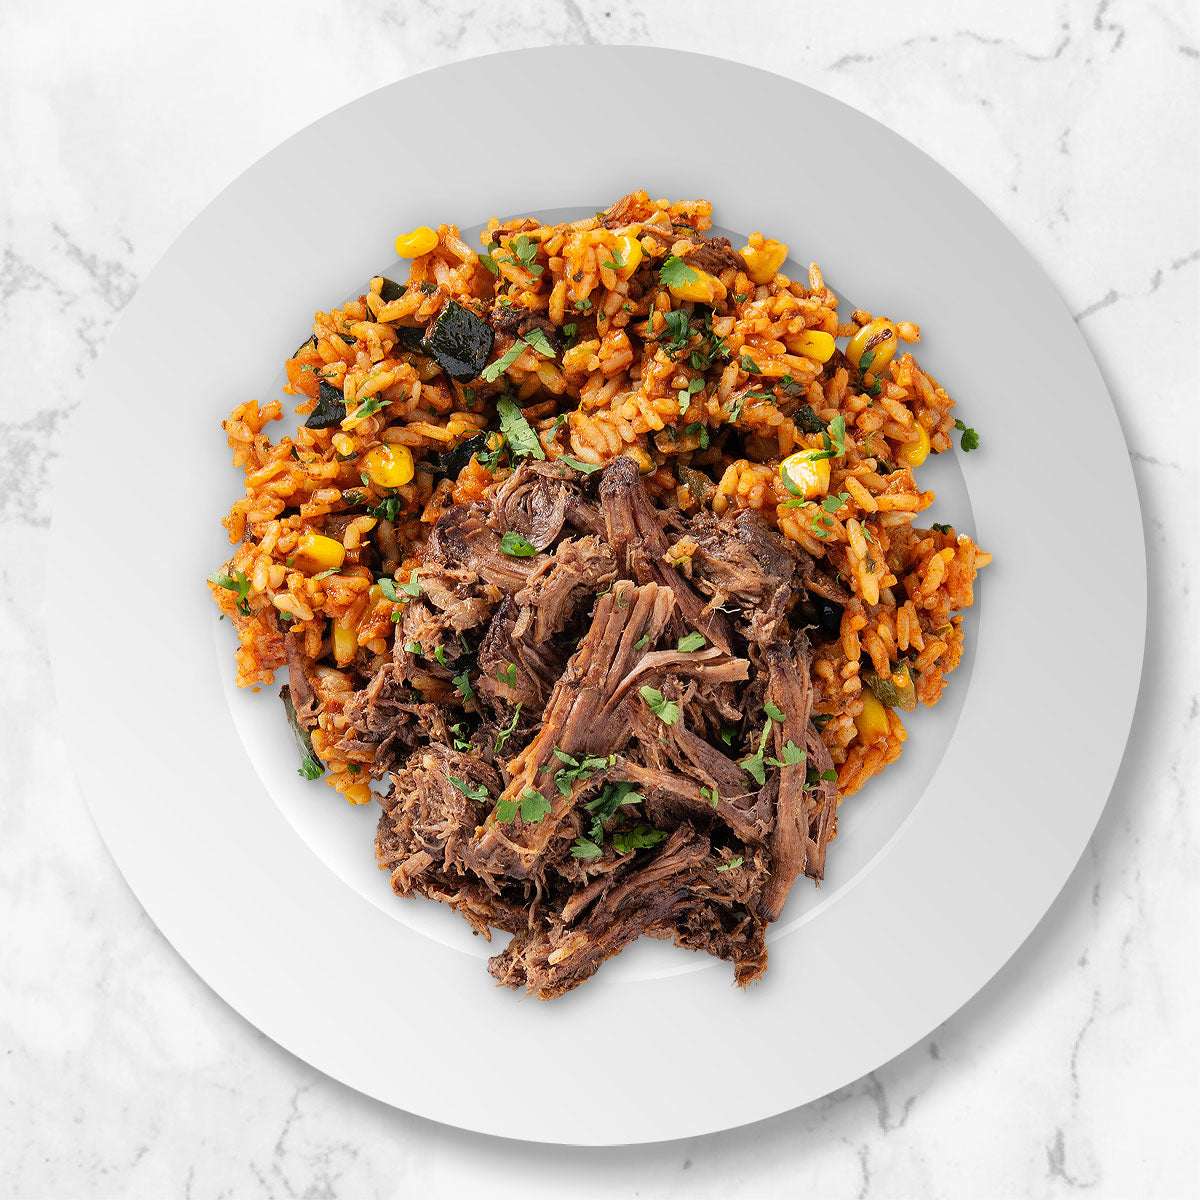 Shredded Beef and Rice Bowl